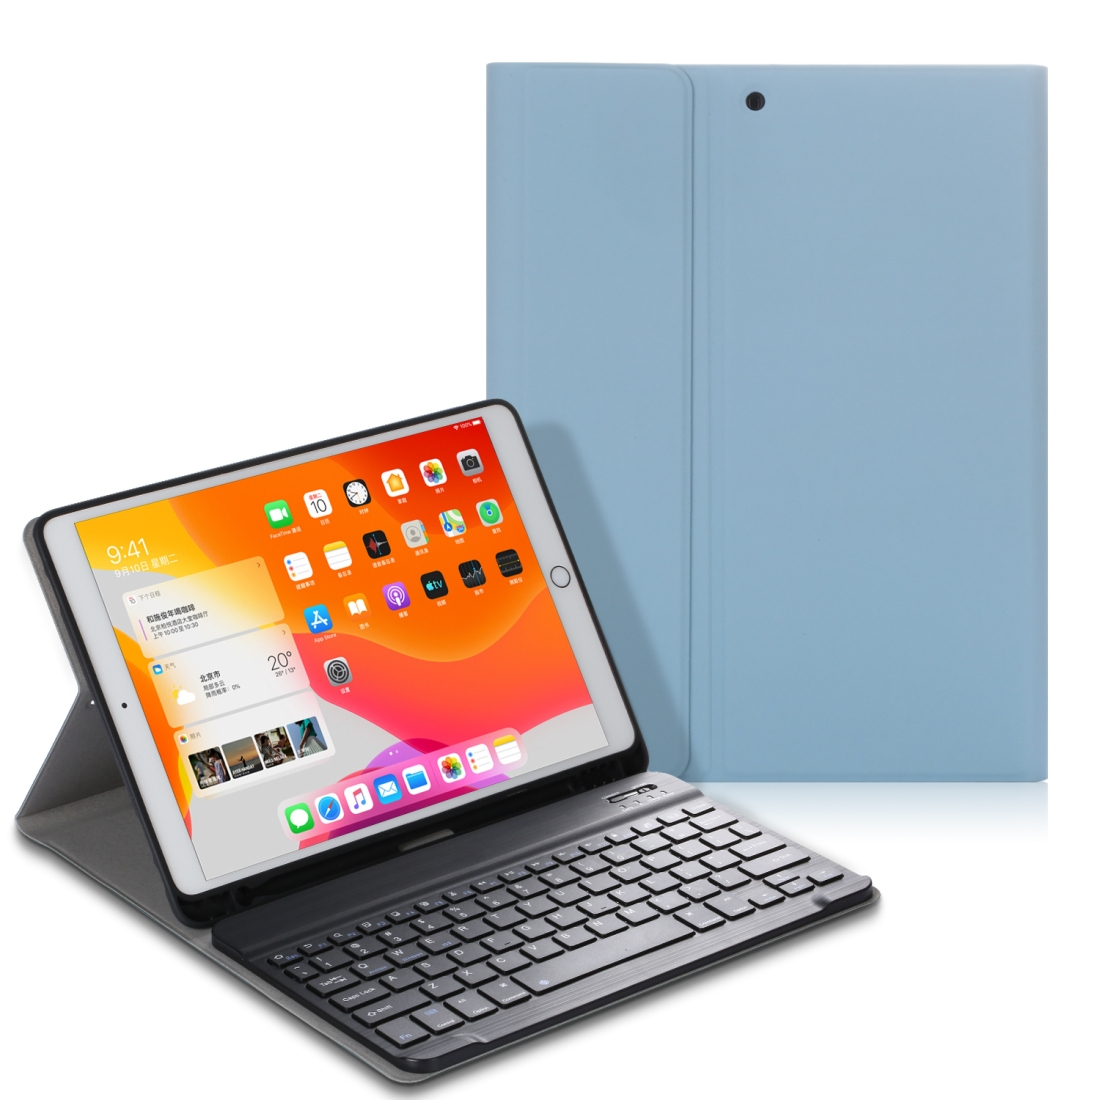 iPad Case With Keyboard & Bluetooth For iPad 10.2 Inch, Leather Case & Backlit Keyboard (Light Blue)